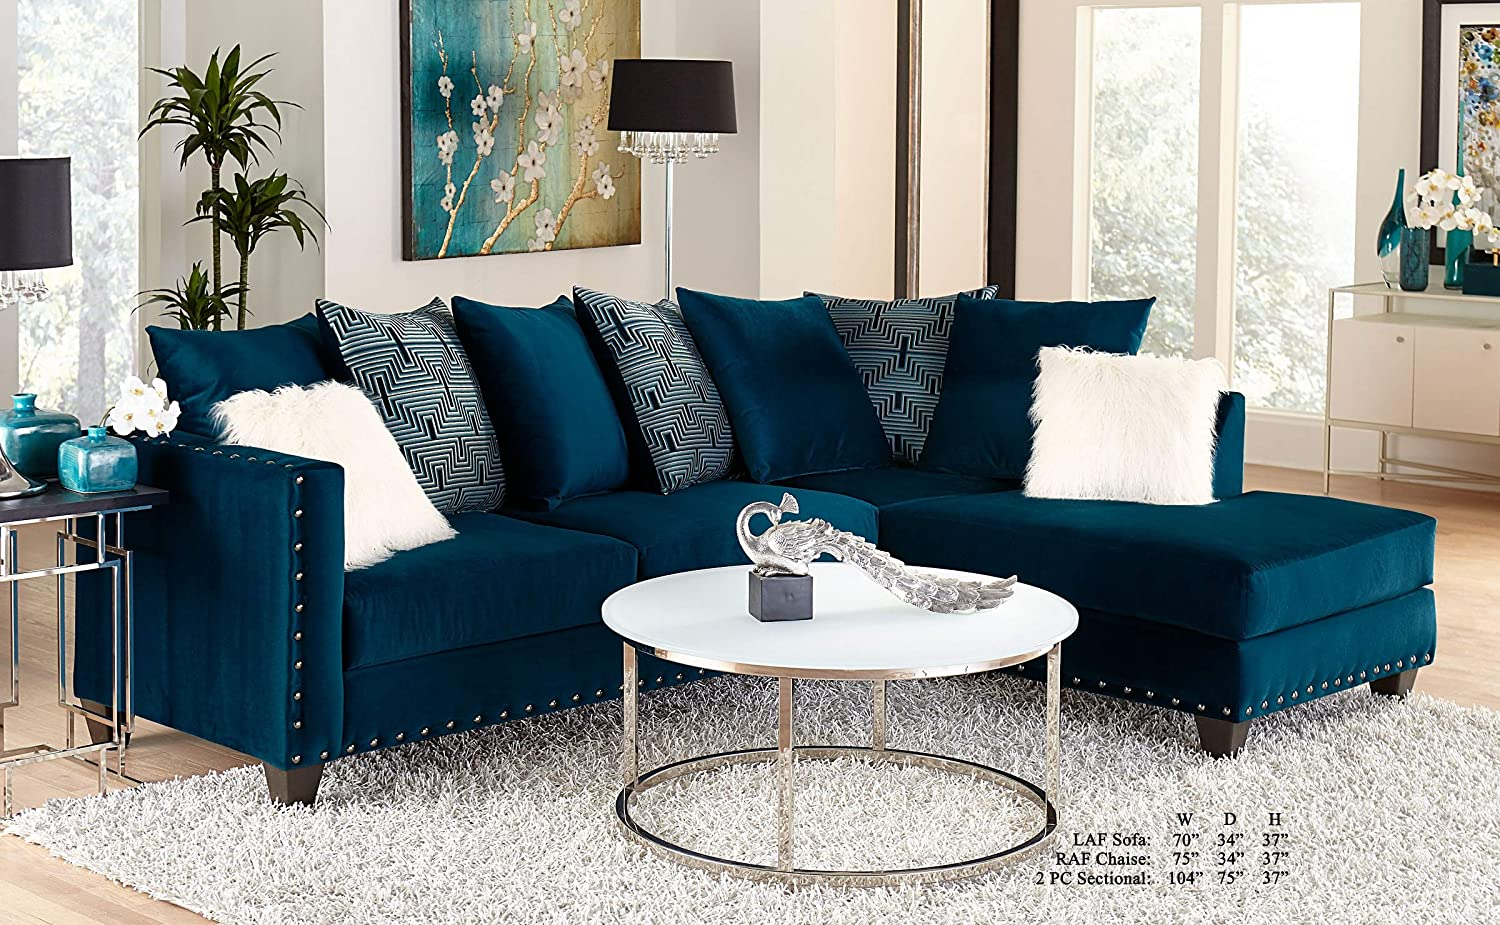 Amazon.com: Esofastore Living Room Modern Classic Blue ...